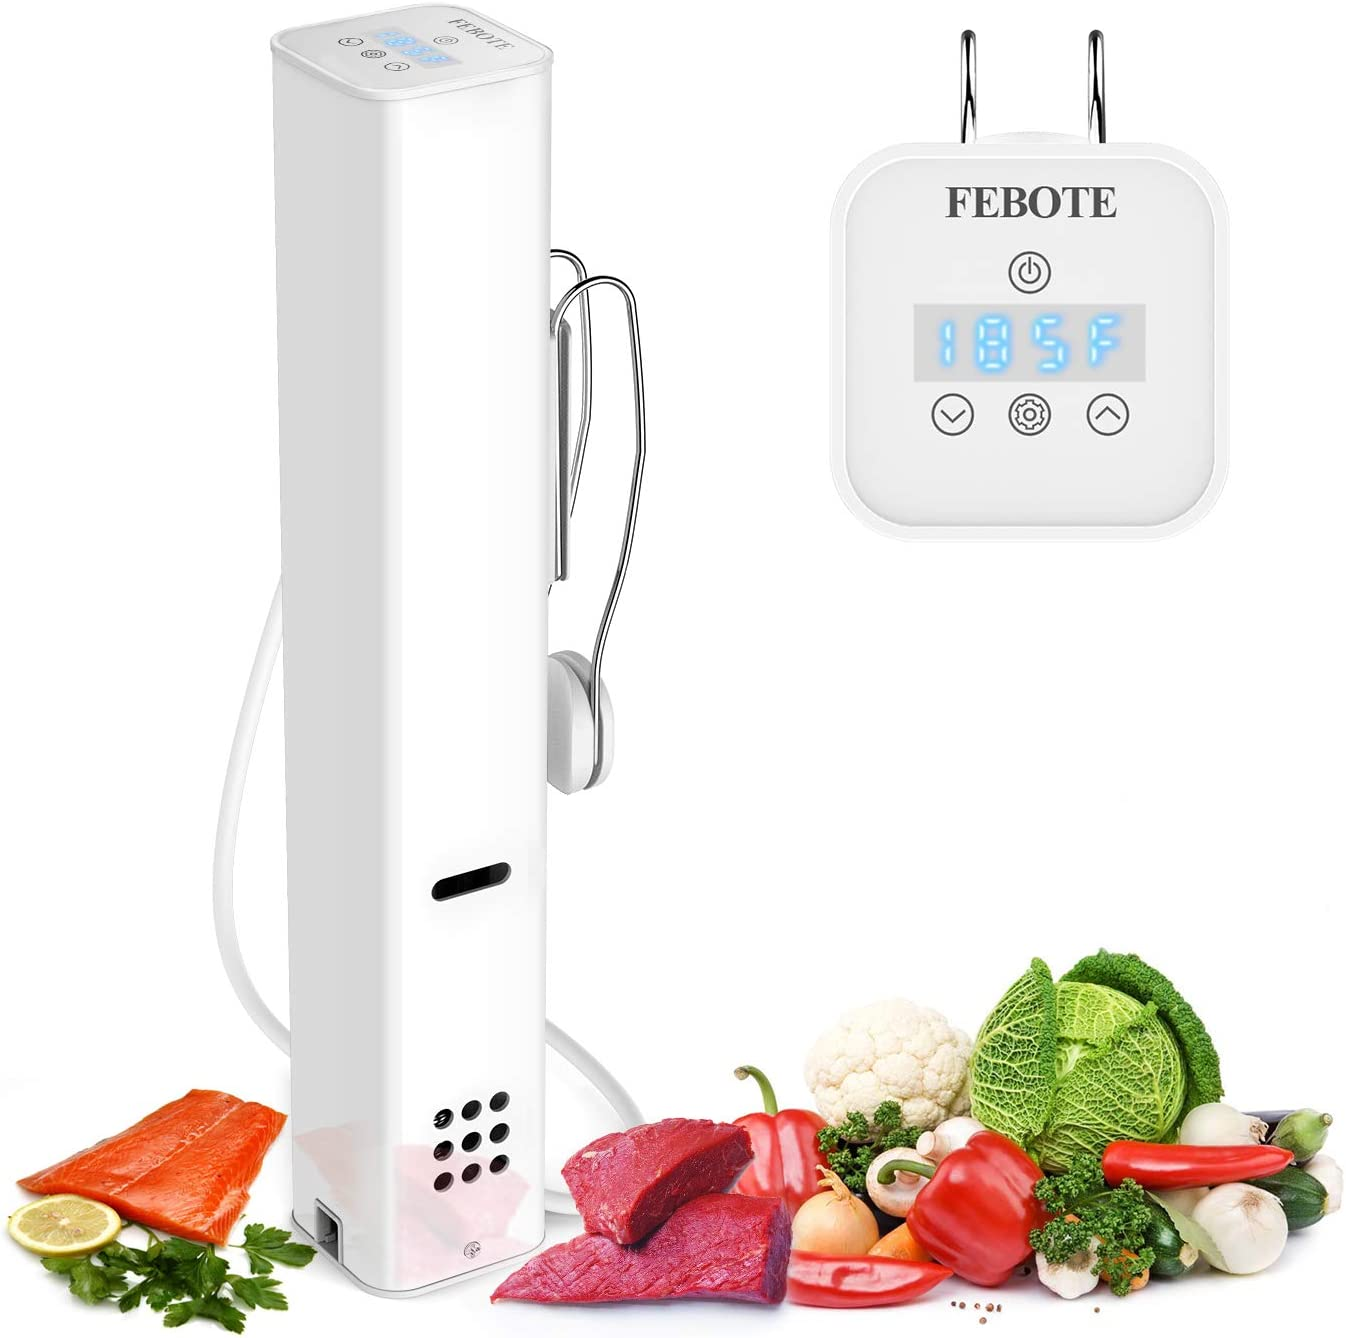 FEBOTE Sous Vide Cooker, 1000W Fast Heating Immersion Cooker, Professional Accurate Temperature Control Digital Timer